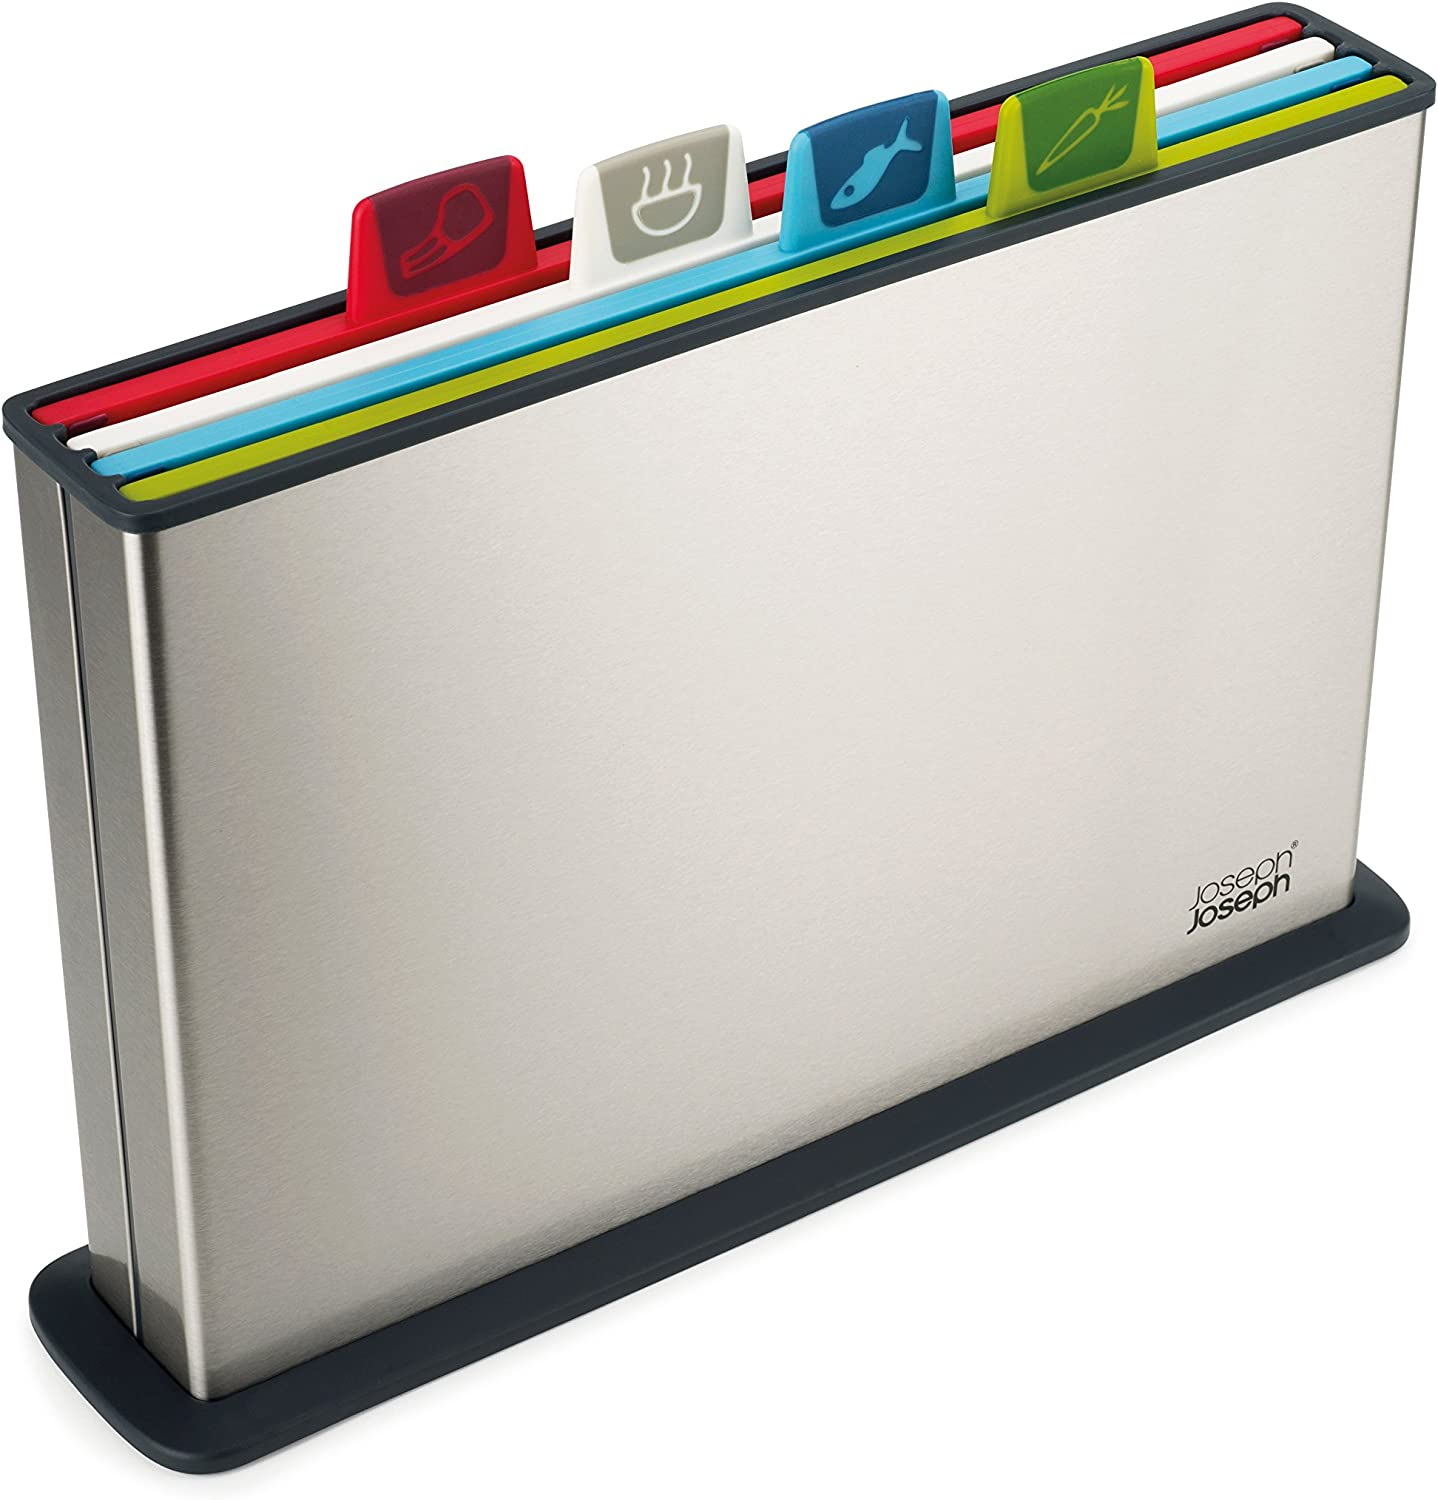 Joseph Joseph 60095 Index Plastic Cutting Board Set with Stainless Steel Storage Case color-Coded Dishwasher-Safe Non-Slip, Large, Steel Multicolord